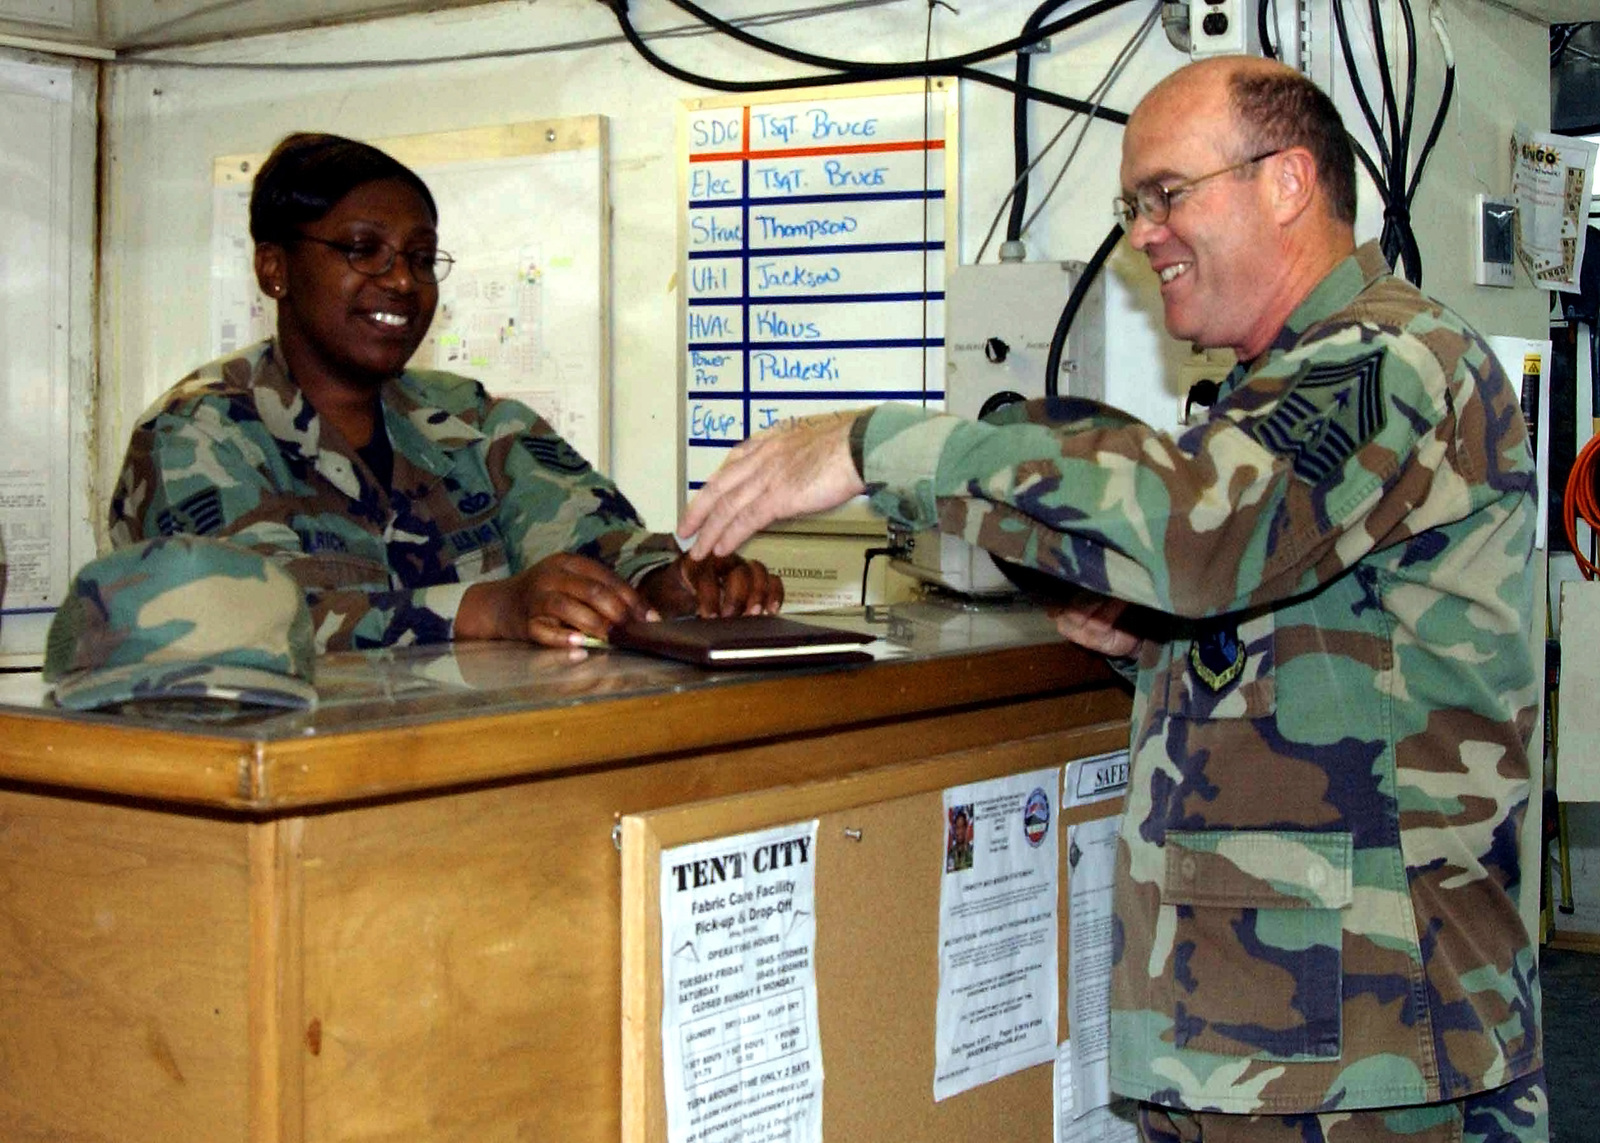 US Air Force (USAF) STAFF Sergeant (SSGT) Tracy Ulrich (left), Exercise Prime Beef, Customer Service Representative, greets USAF CHIEF MASTER Sergeant (CMSGT) Henry Leopard, First Sergeant, Combined Task Force, inside the deployed civil engineering compound tent at Incirlik Air Base (AB), Turkey, during Operation NORTHERN WATCH